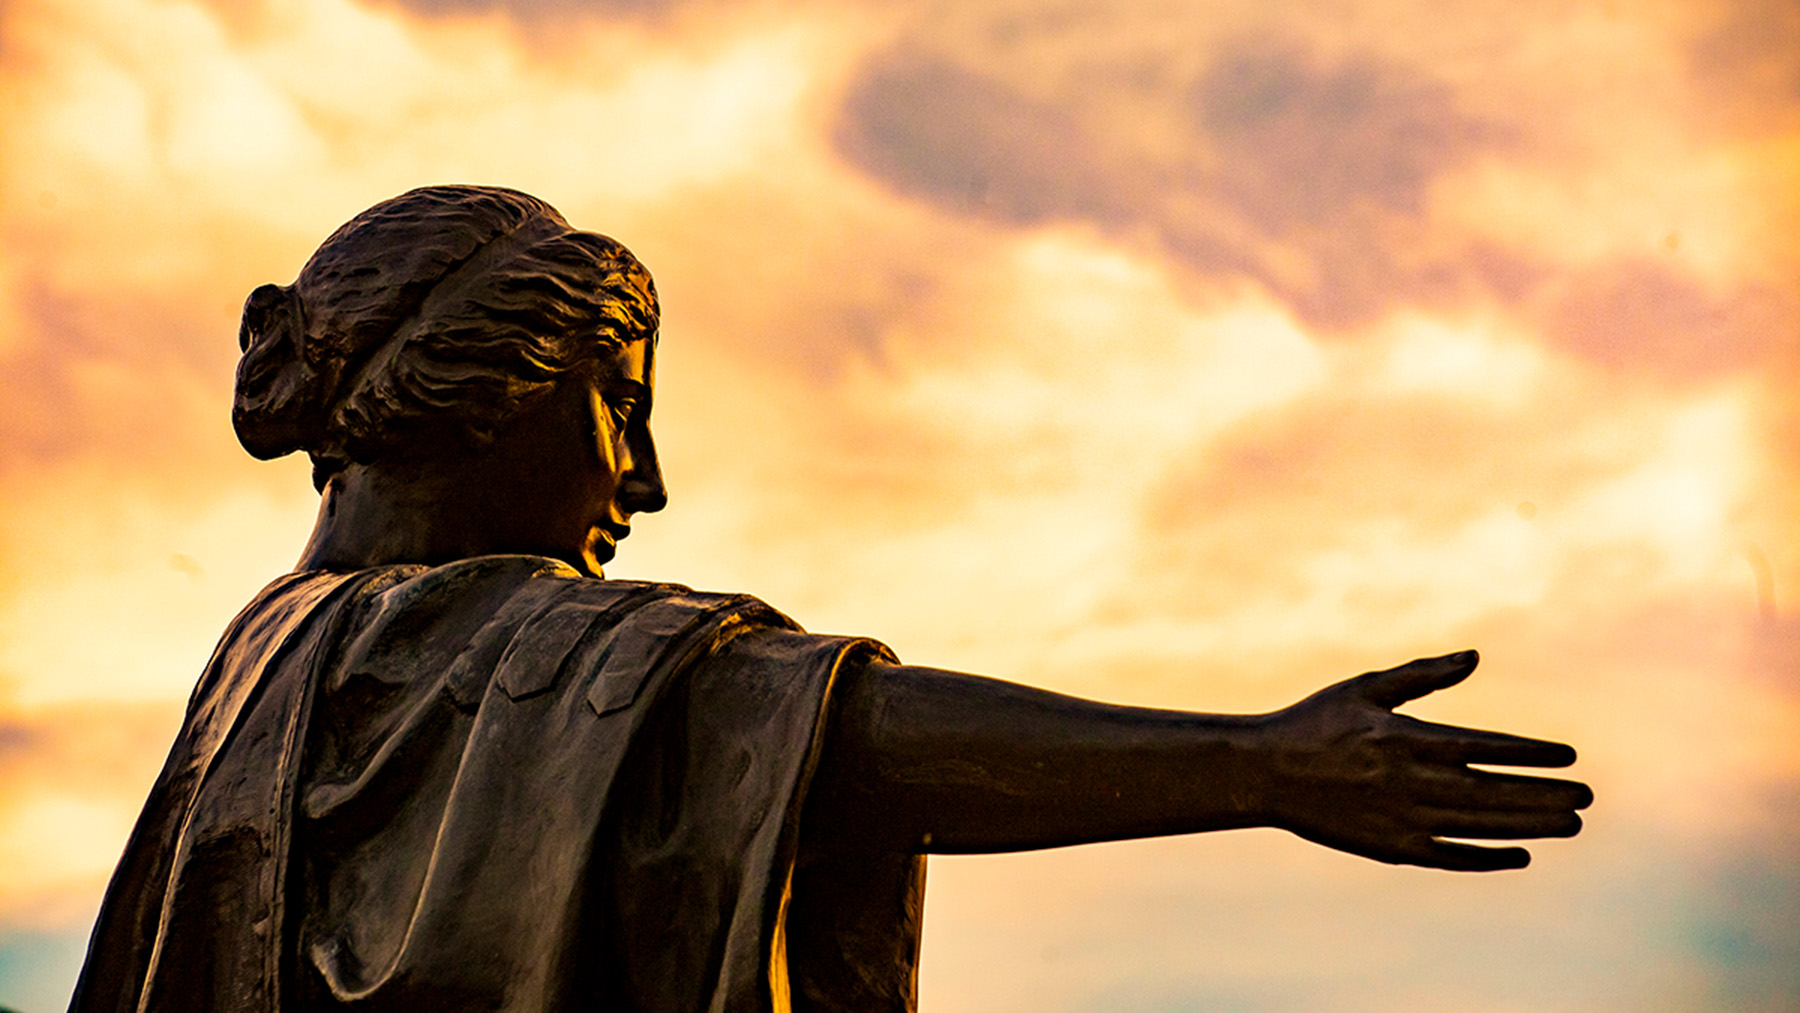 Alma Mater Statue in light of a cloudy orange sunset. Photo by Fred Zwicky